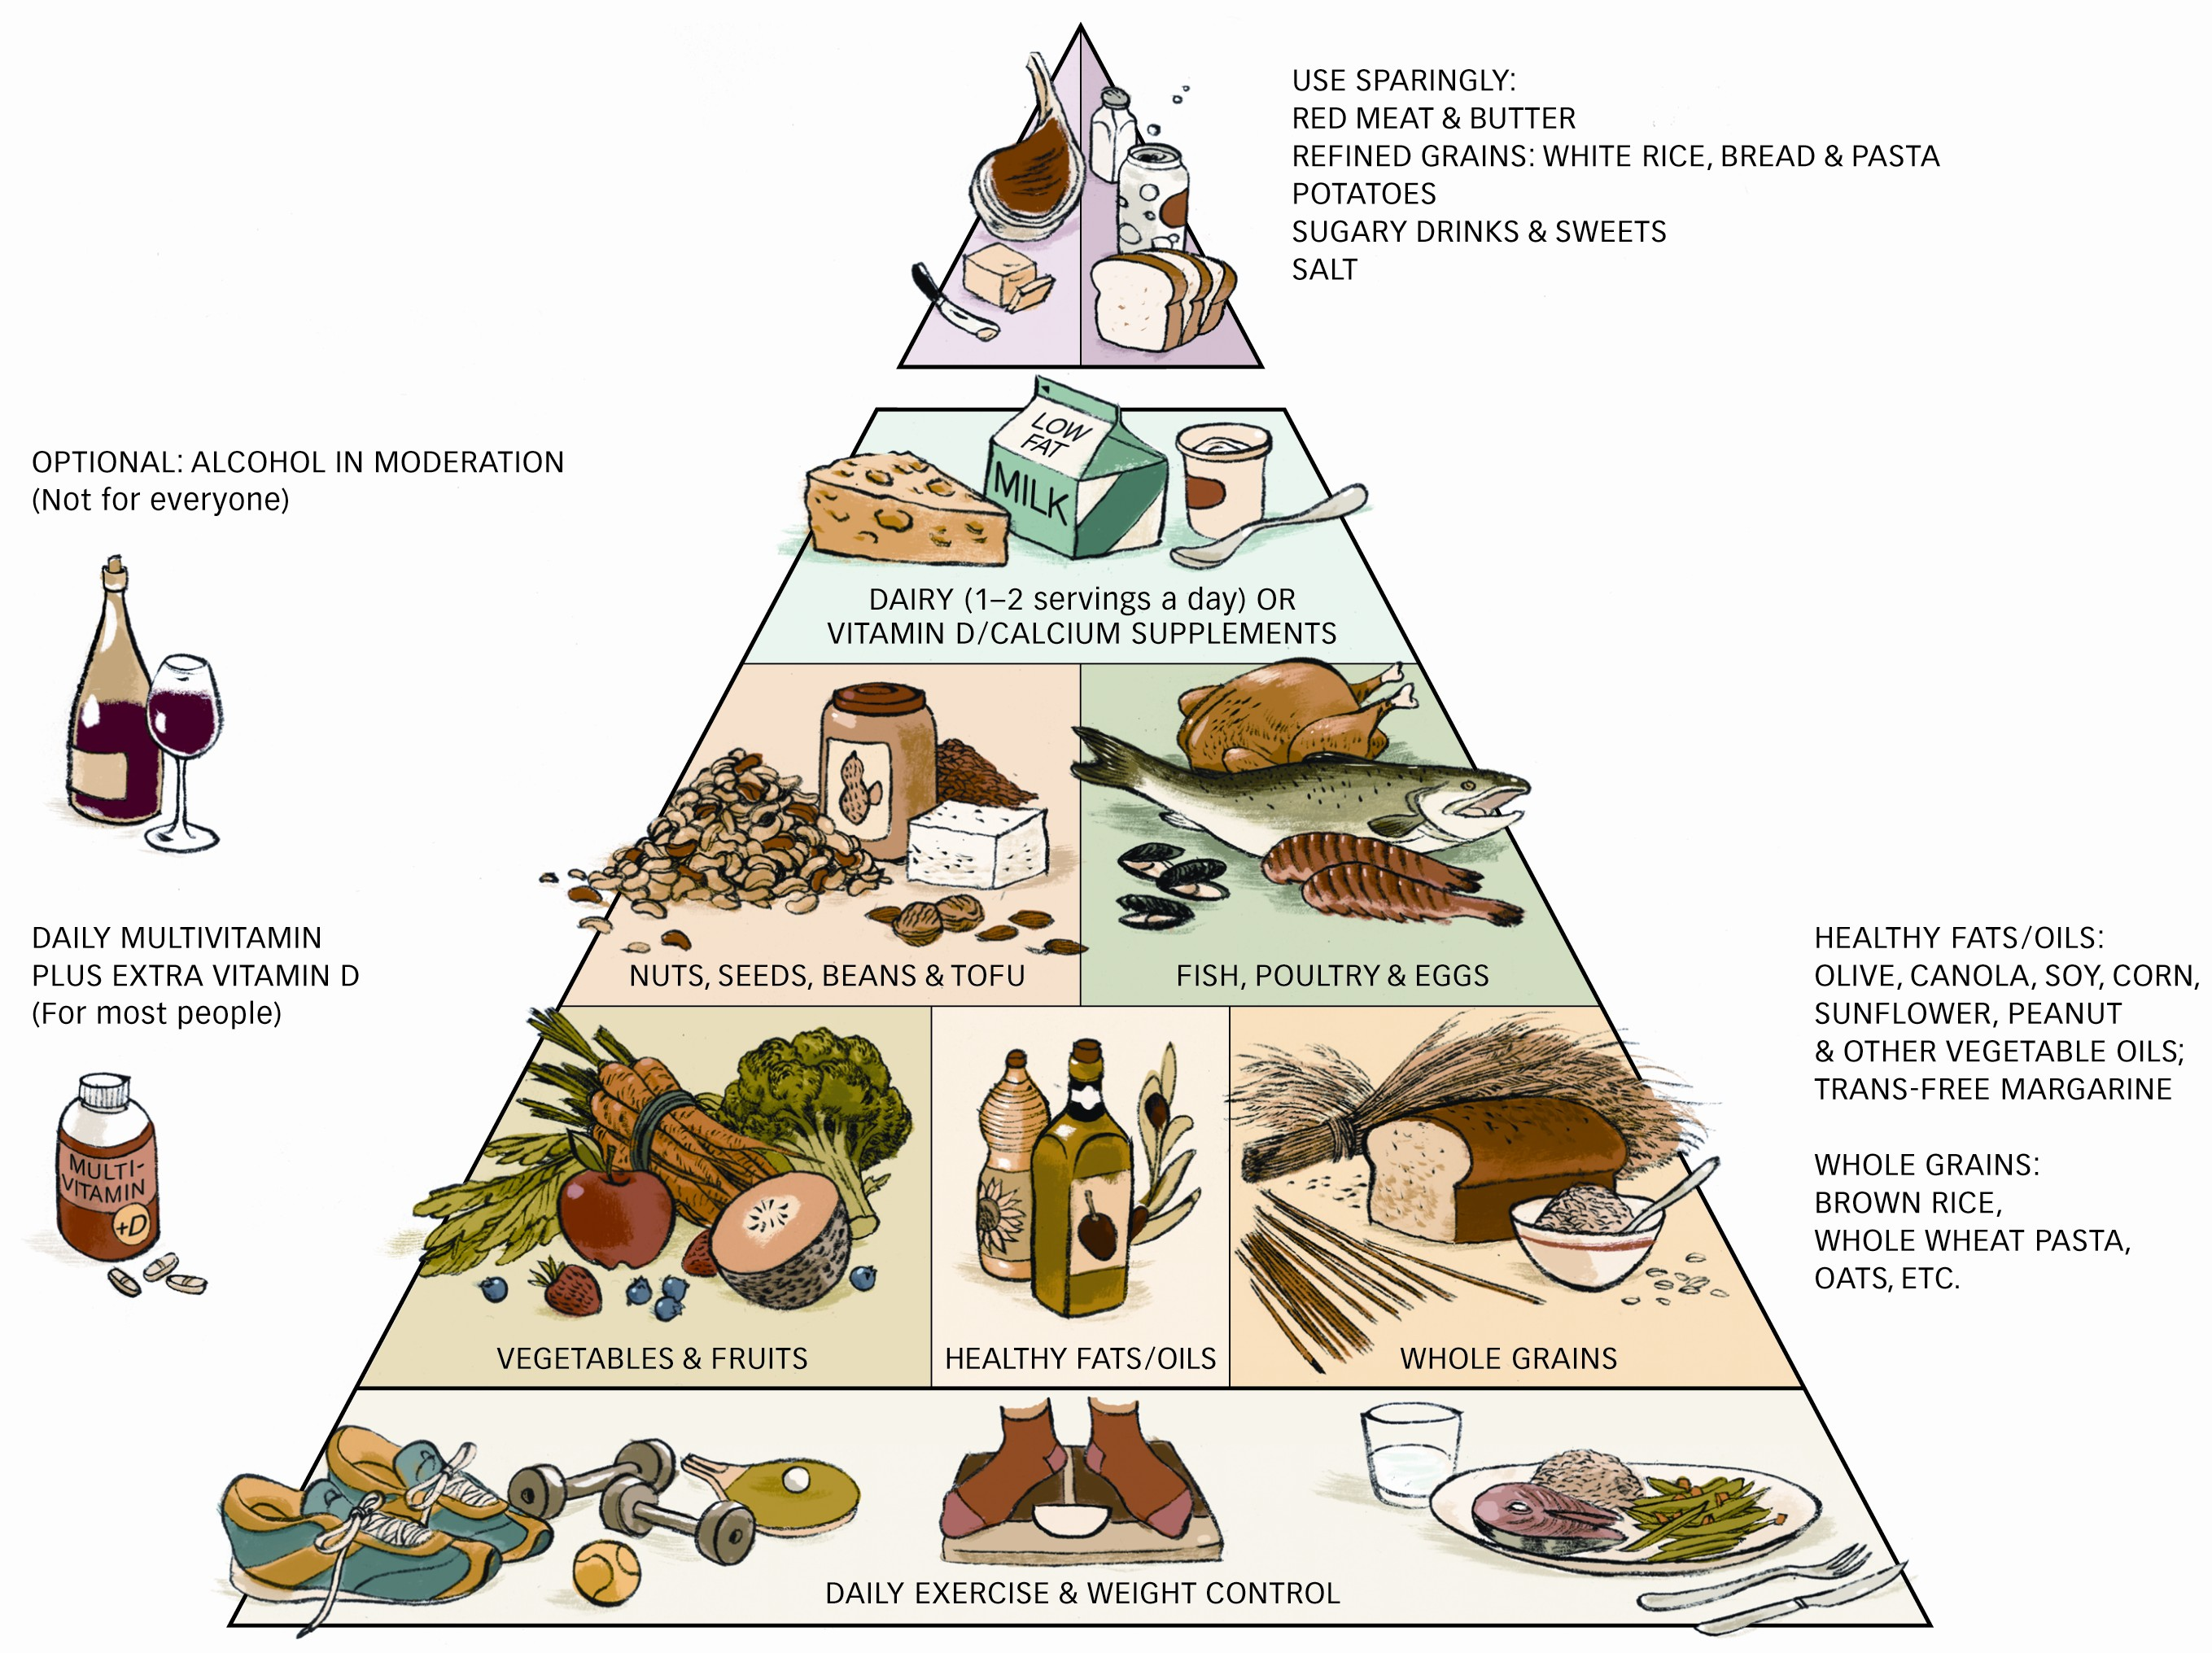 Healthy food pyramid presents healthy choice of food for your everyday